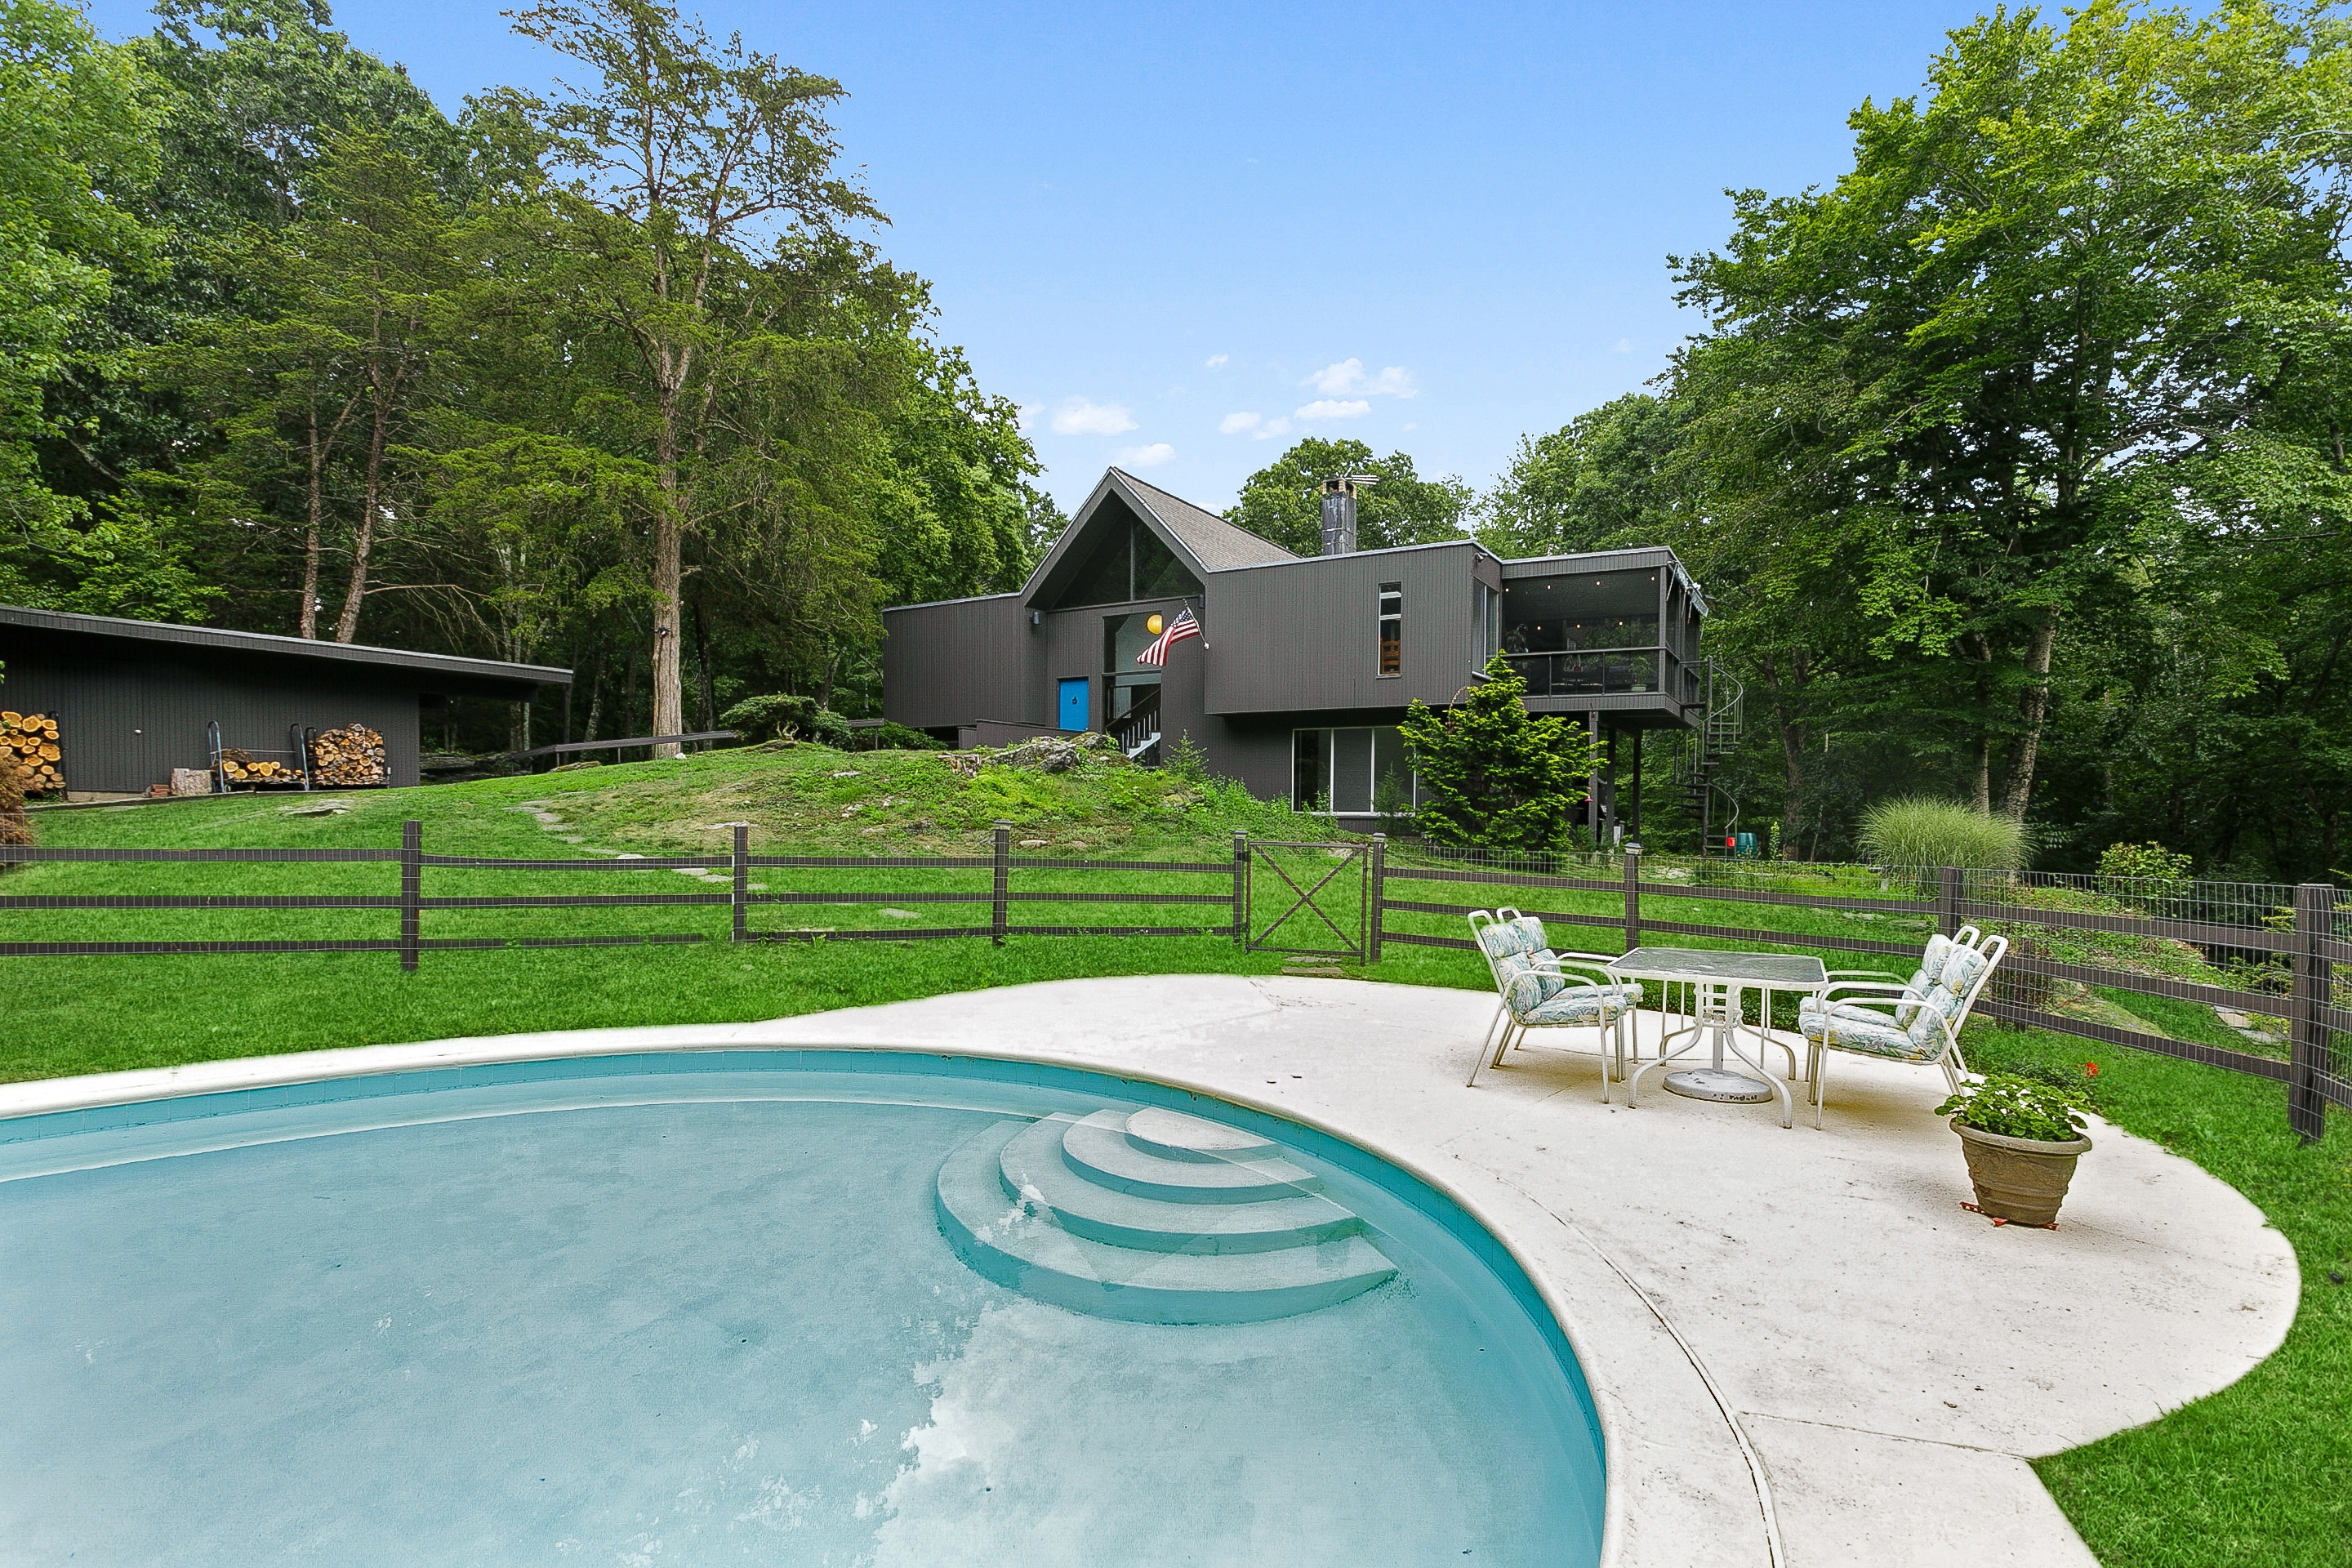 A swimming pool sits in the foreground of the photo with a gray midcentury style home and green grass in the back.